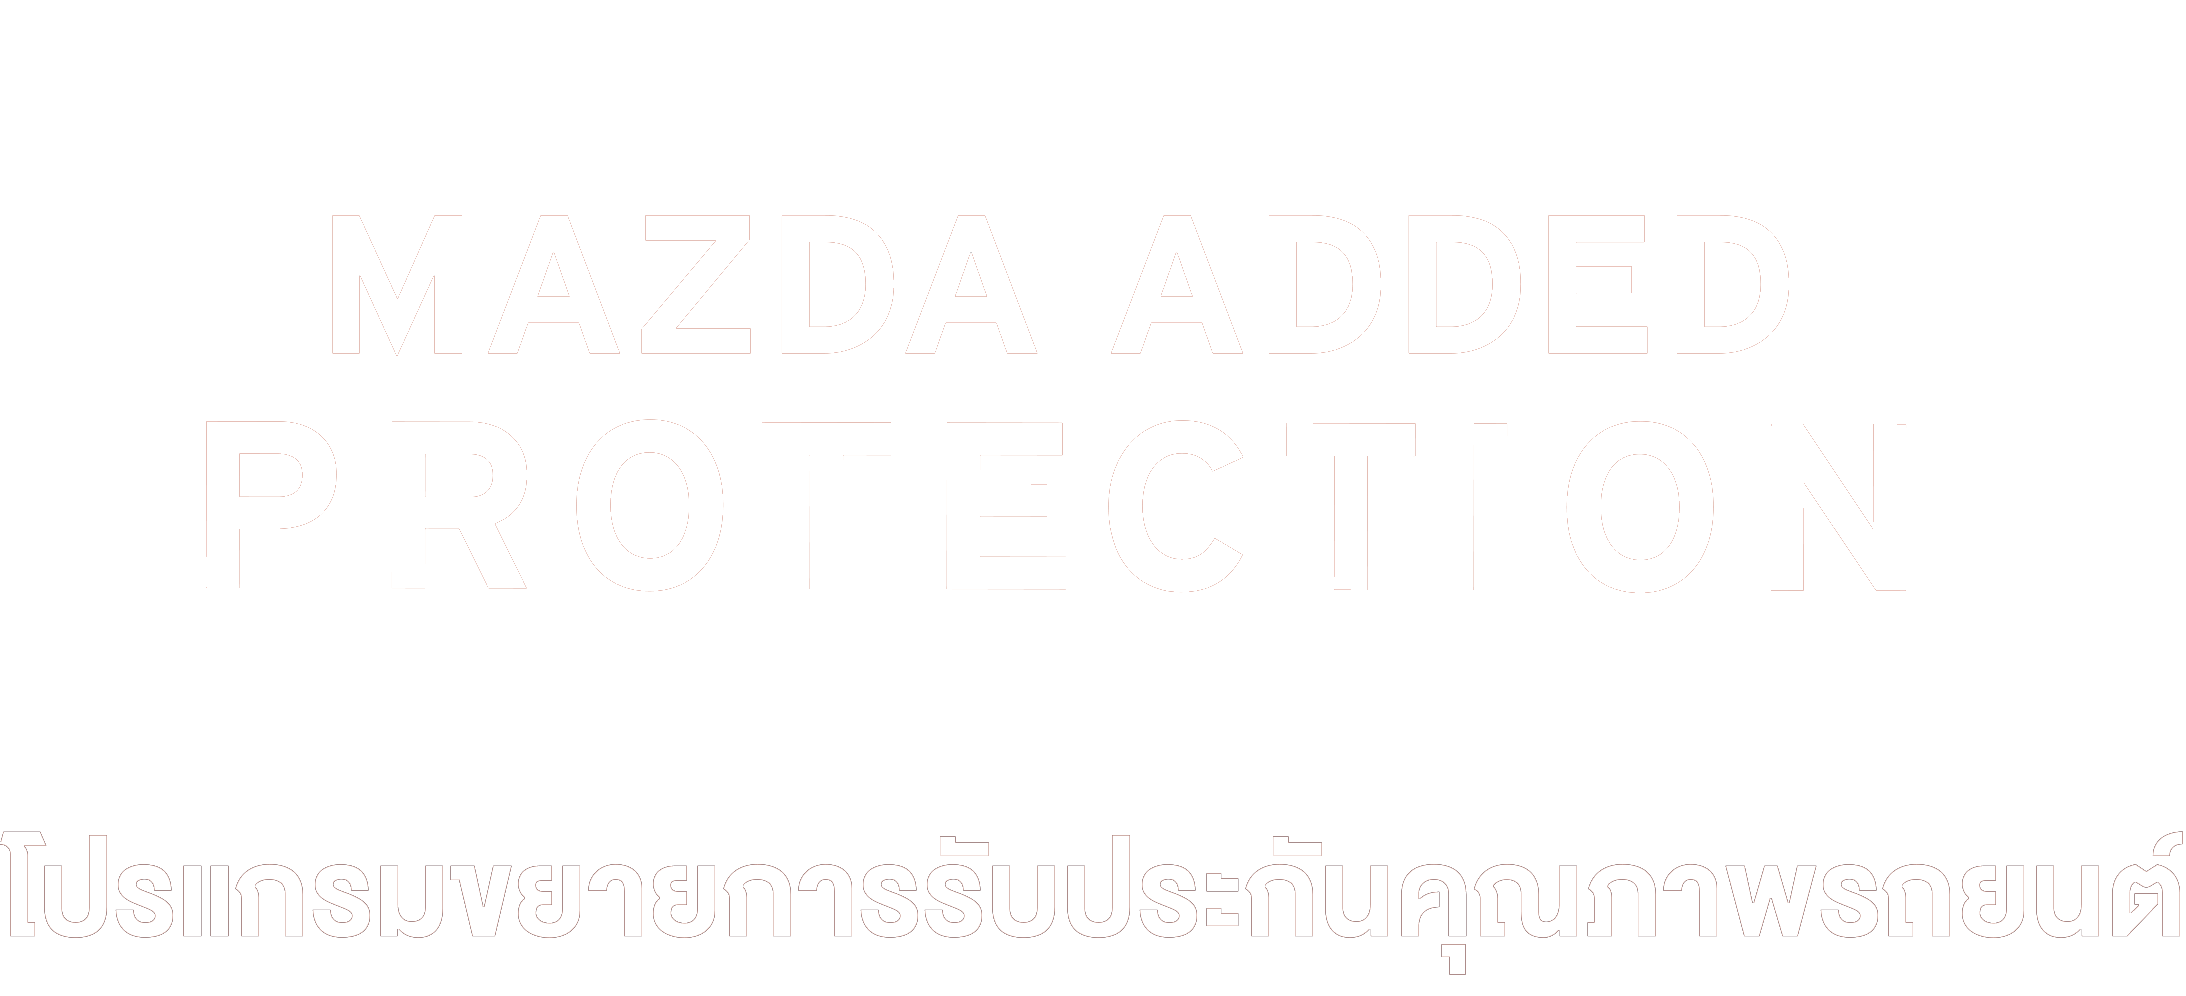 Mazda Added Protection